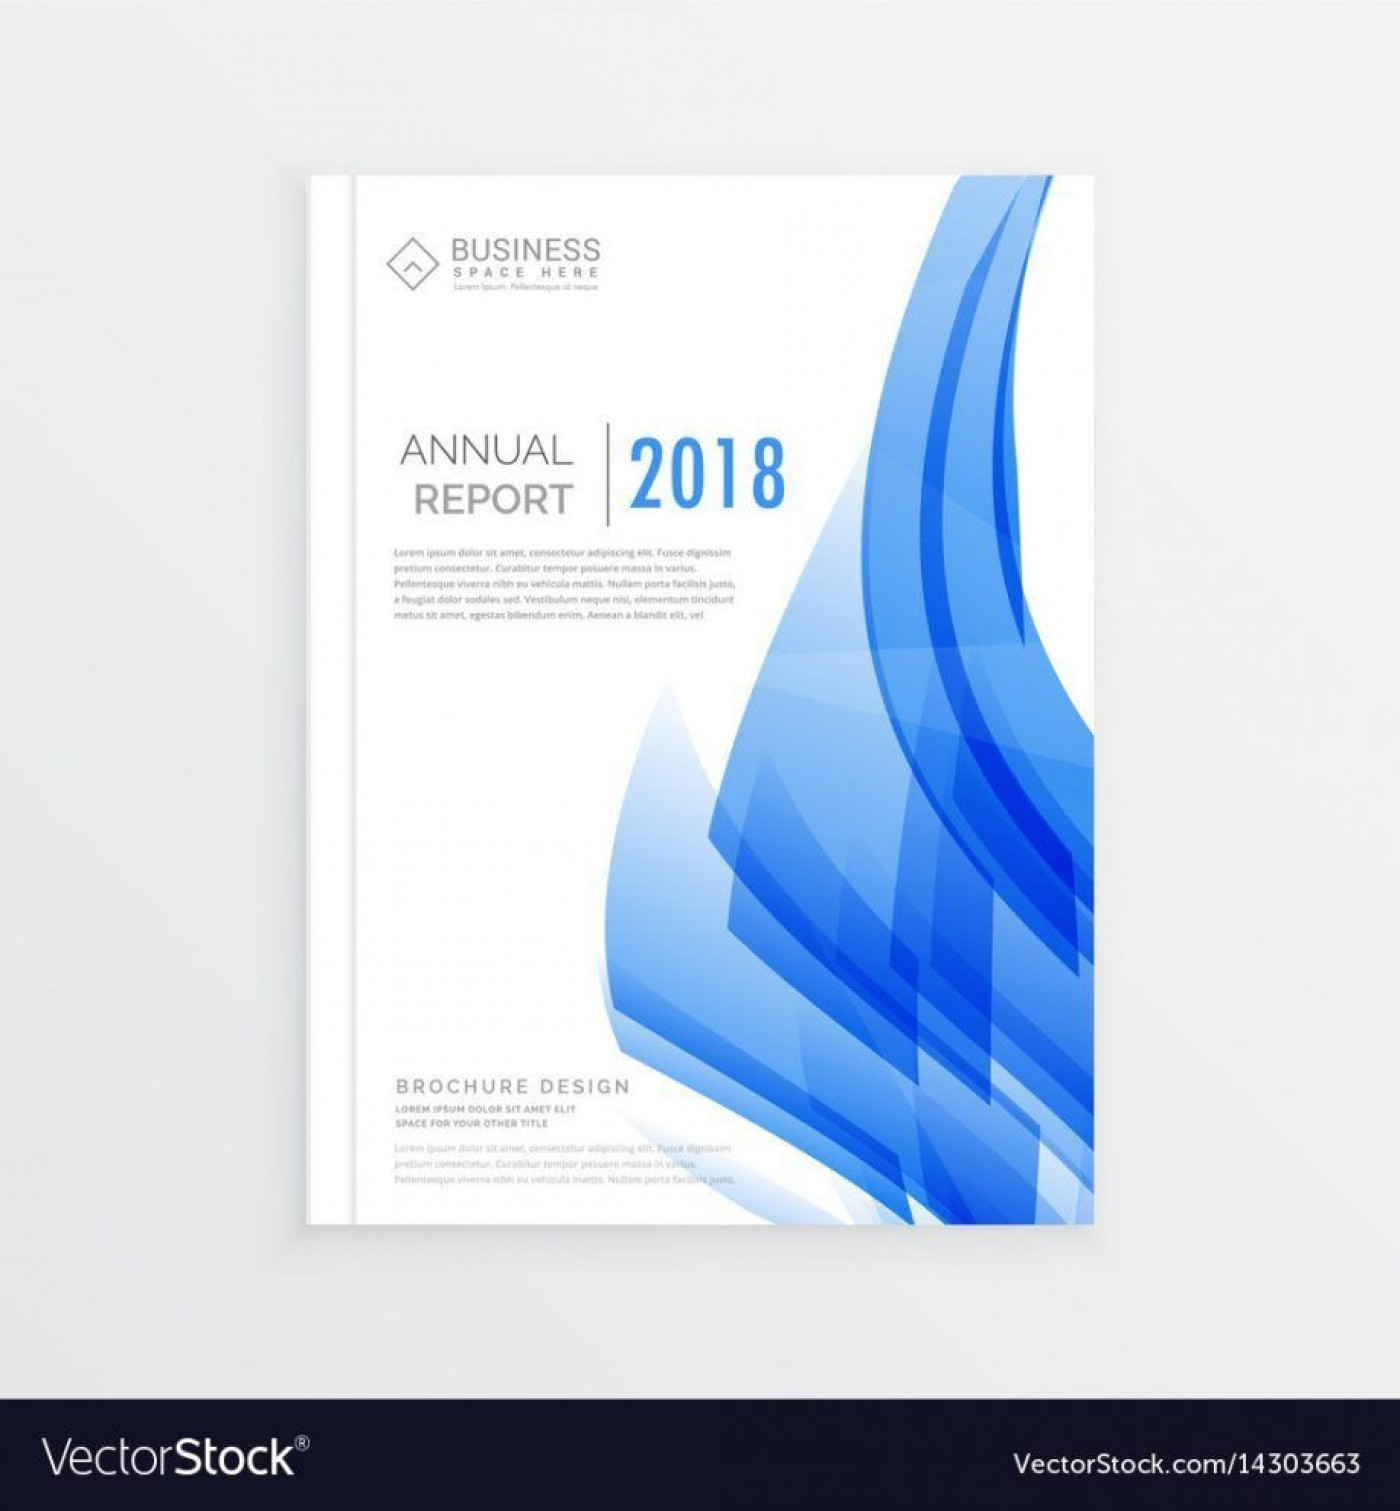 002 Surprising Free Download Annual Report Cover Design Template Photo  In Word Page1400